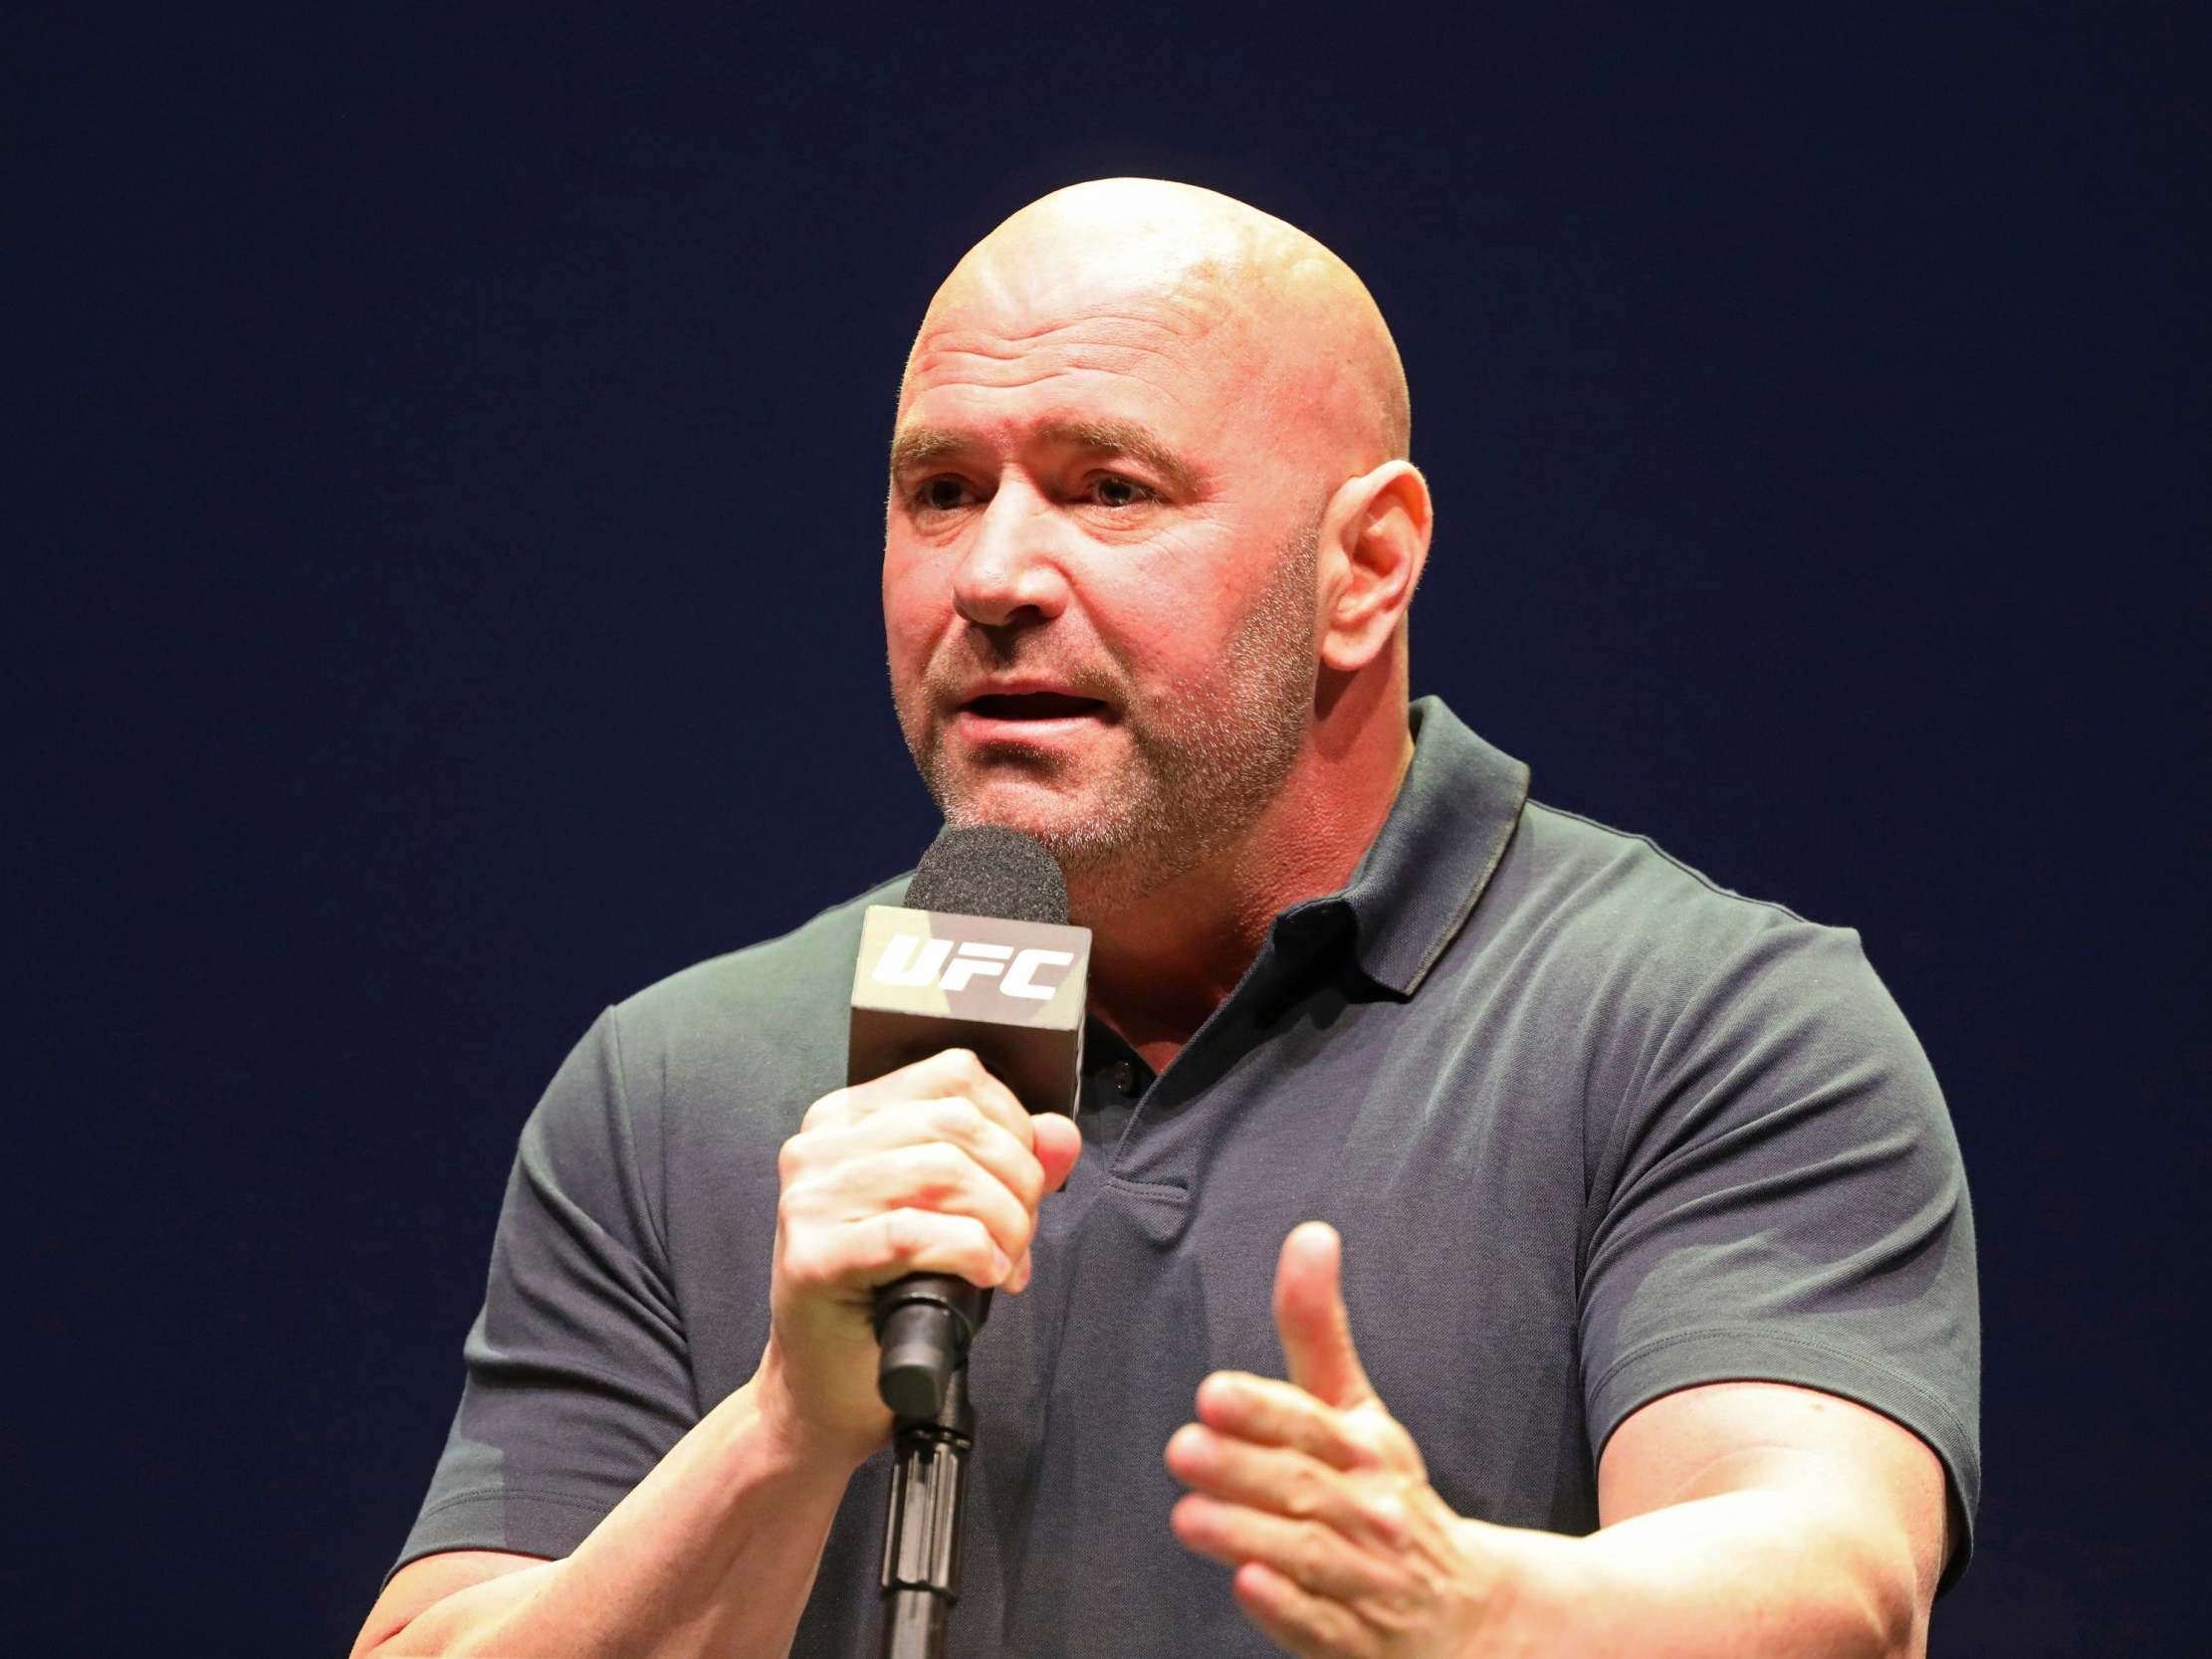 UFC 249 cancelled after ESPN and Disney force Dana White into U-turn after phone calls 'from highest level' - The Independent